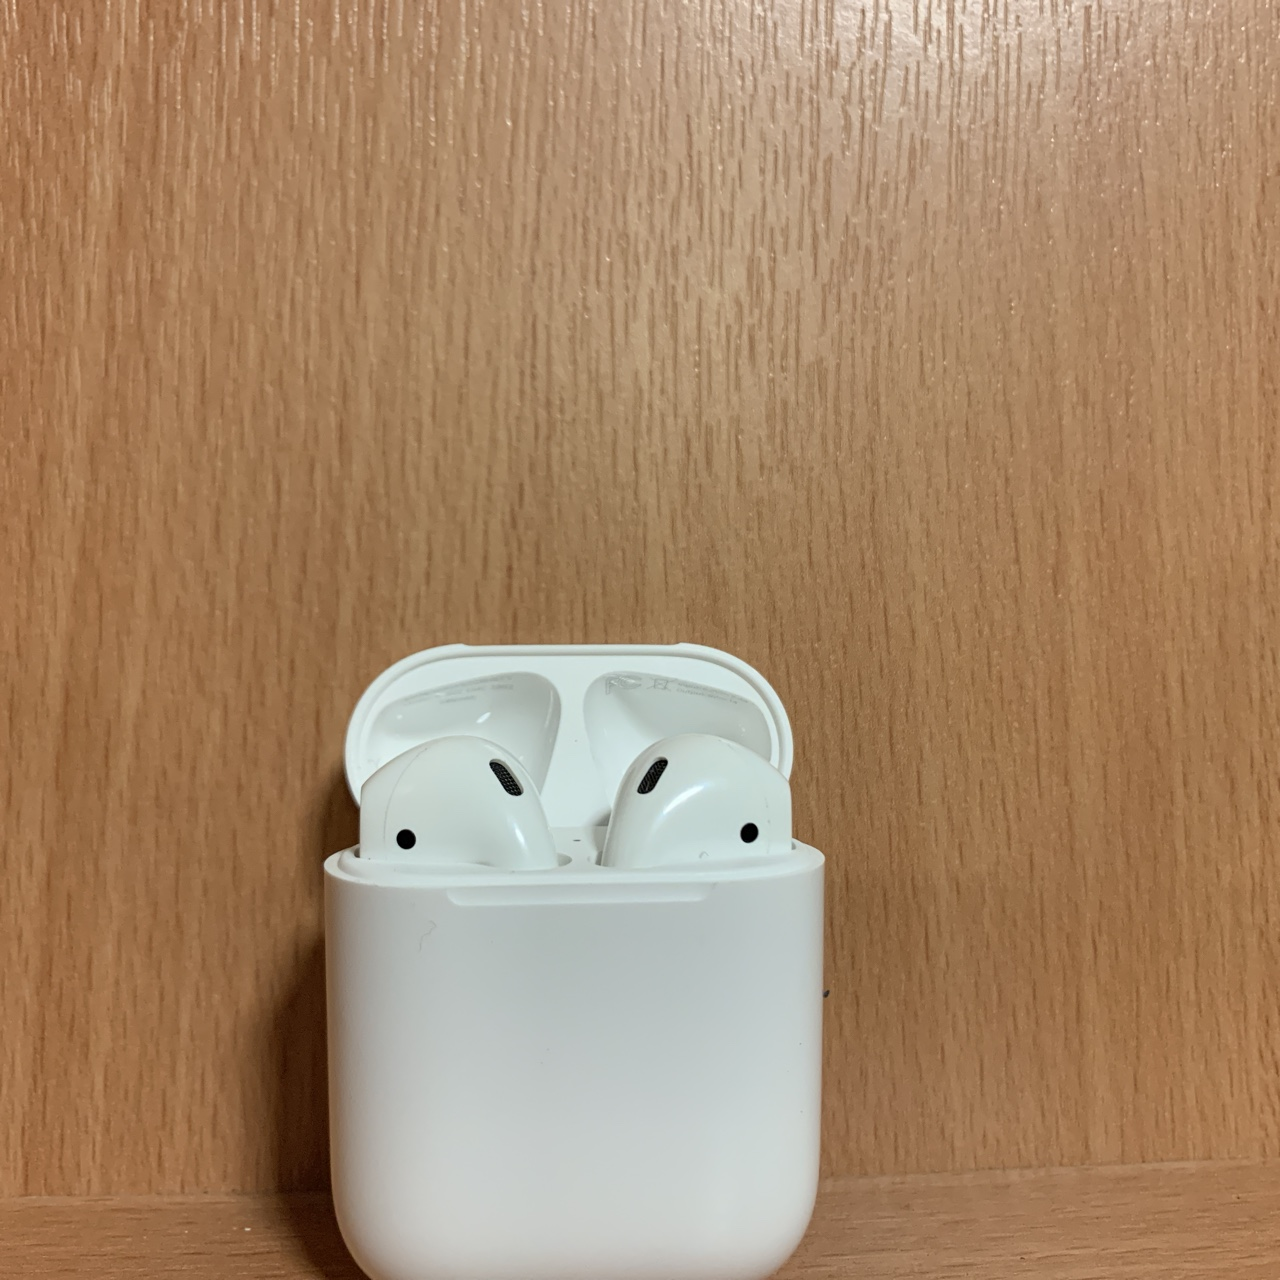 9/10 Apple airpods for sale  £80 would like to get    - Depop